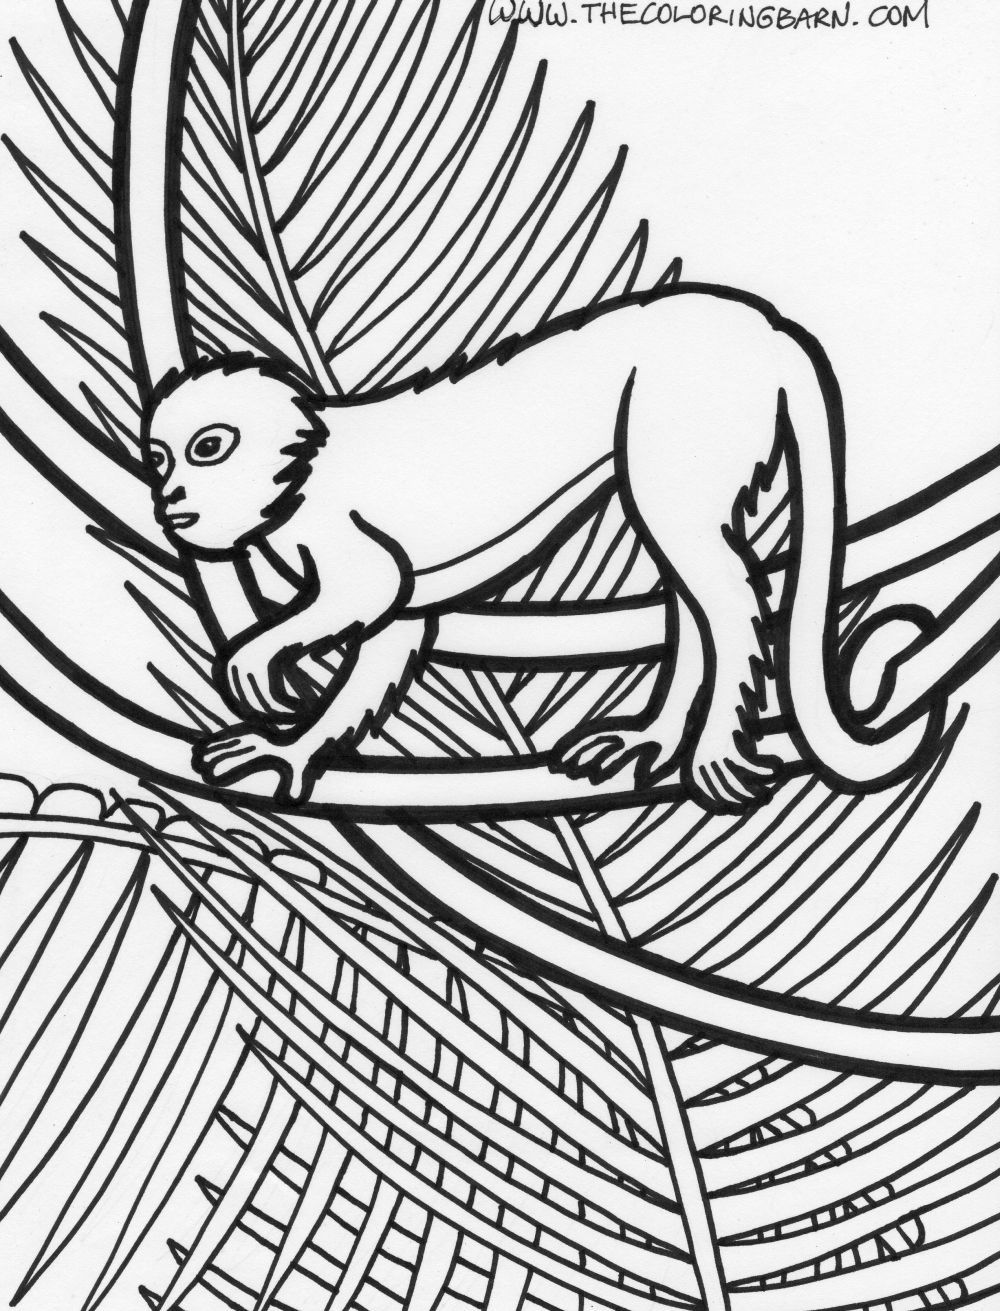 Rainforest The Coloring Barn Printable Coloring Pages Monkey Coloring Pages Animal Coloring Pages Coloring Pages